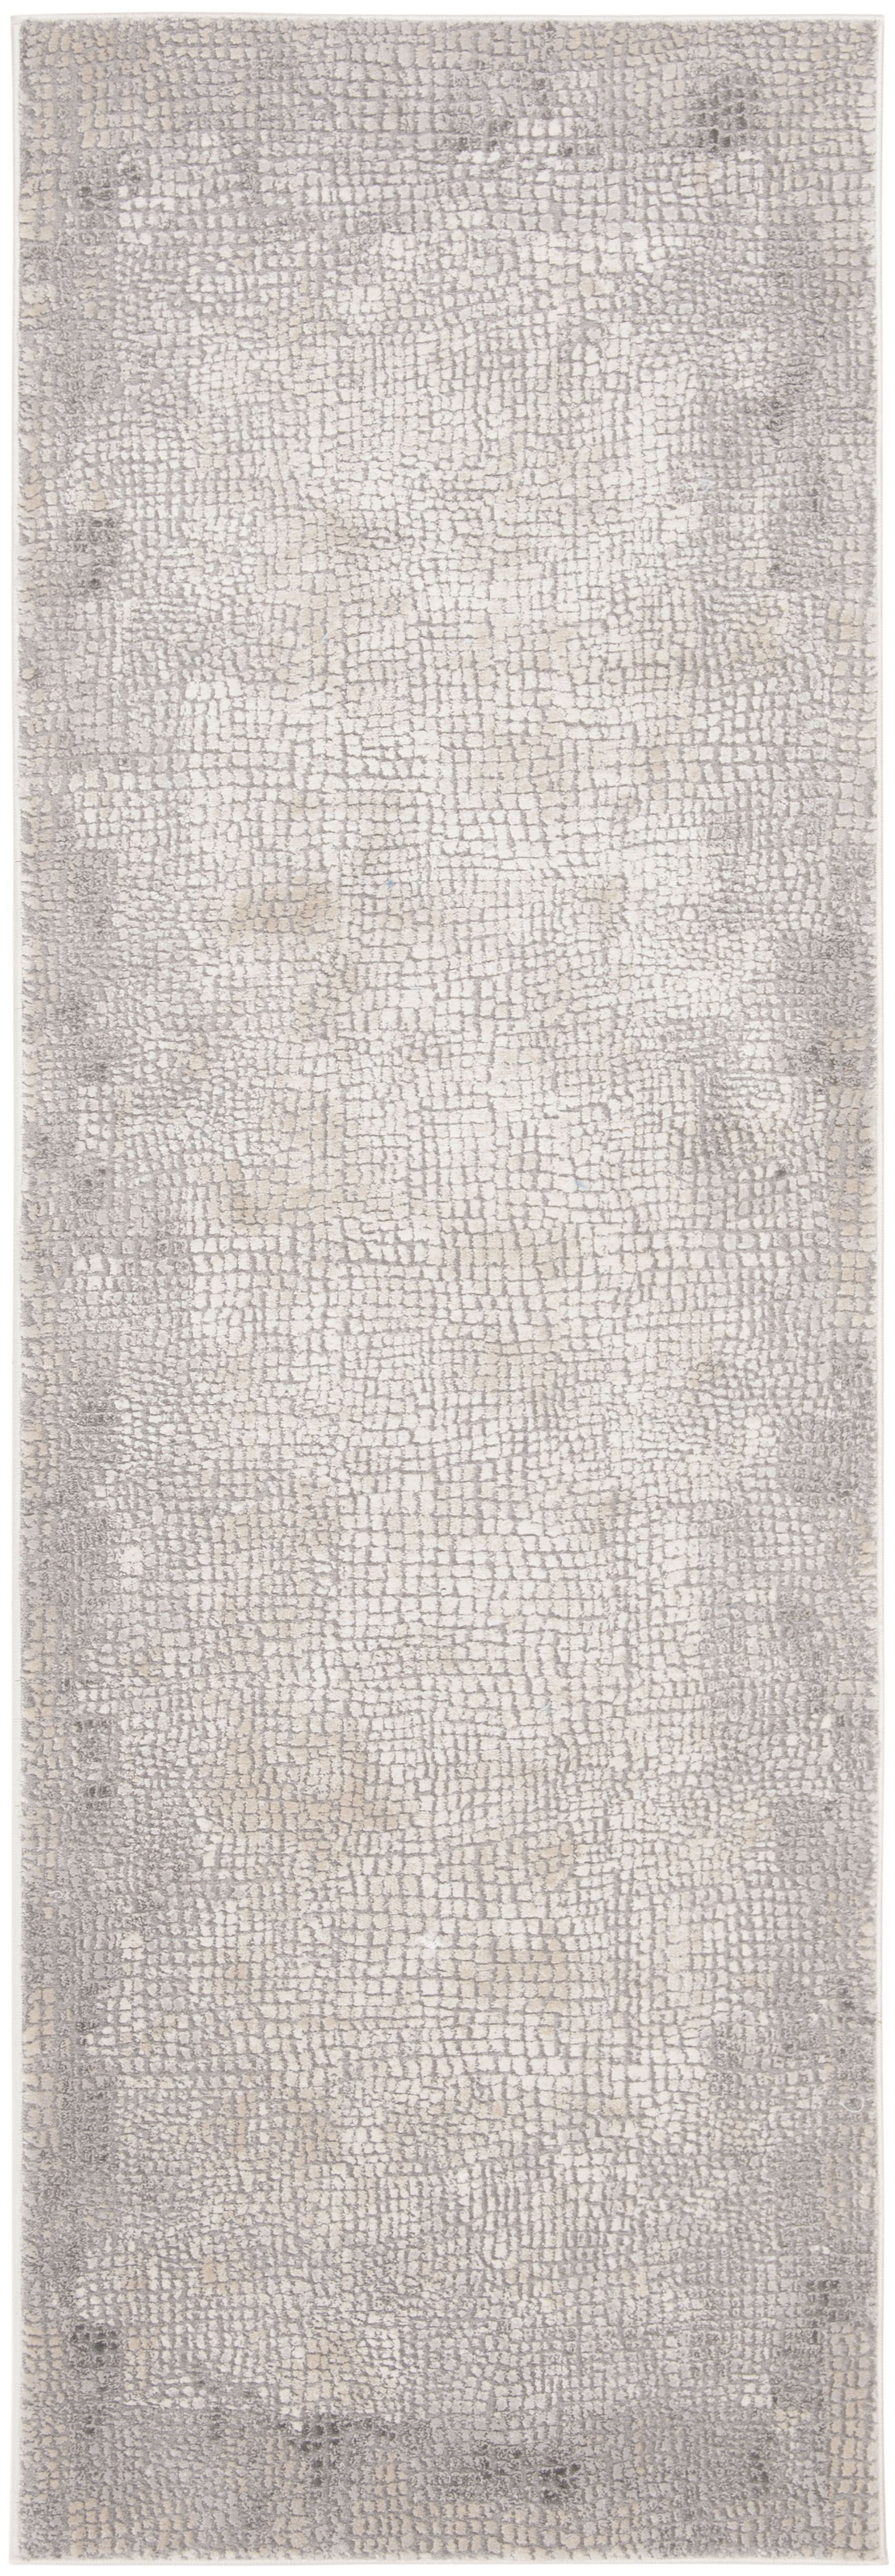 Edvin Taupe/Gray Area Rug Rug Size: Rectangle 4' X 6'